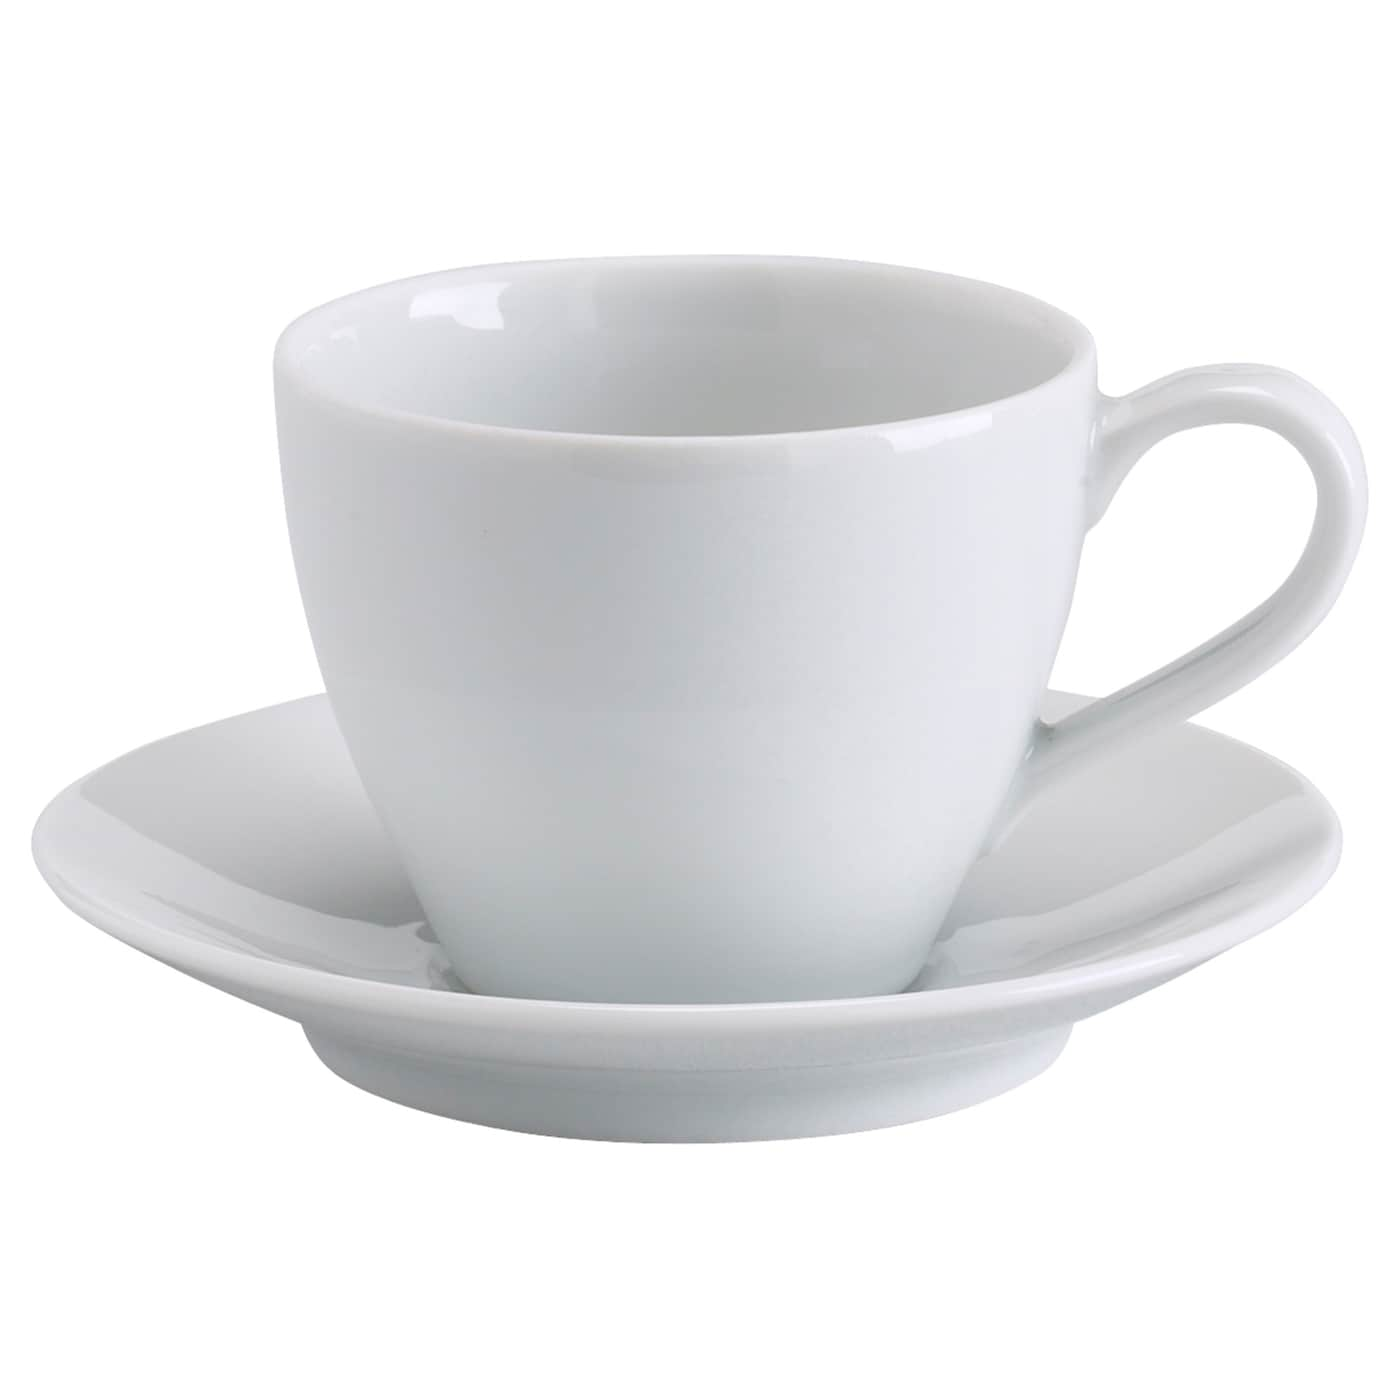 Vardera Coffee Cup And Saucer White Ikea